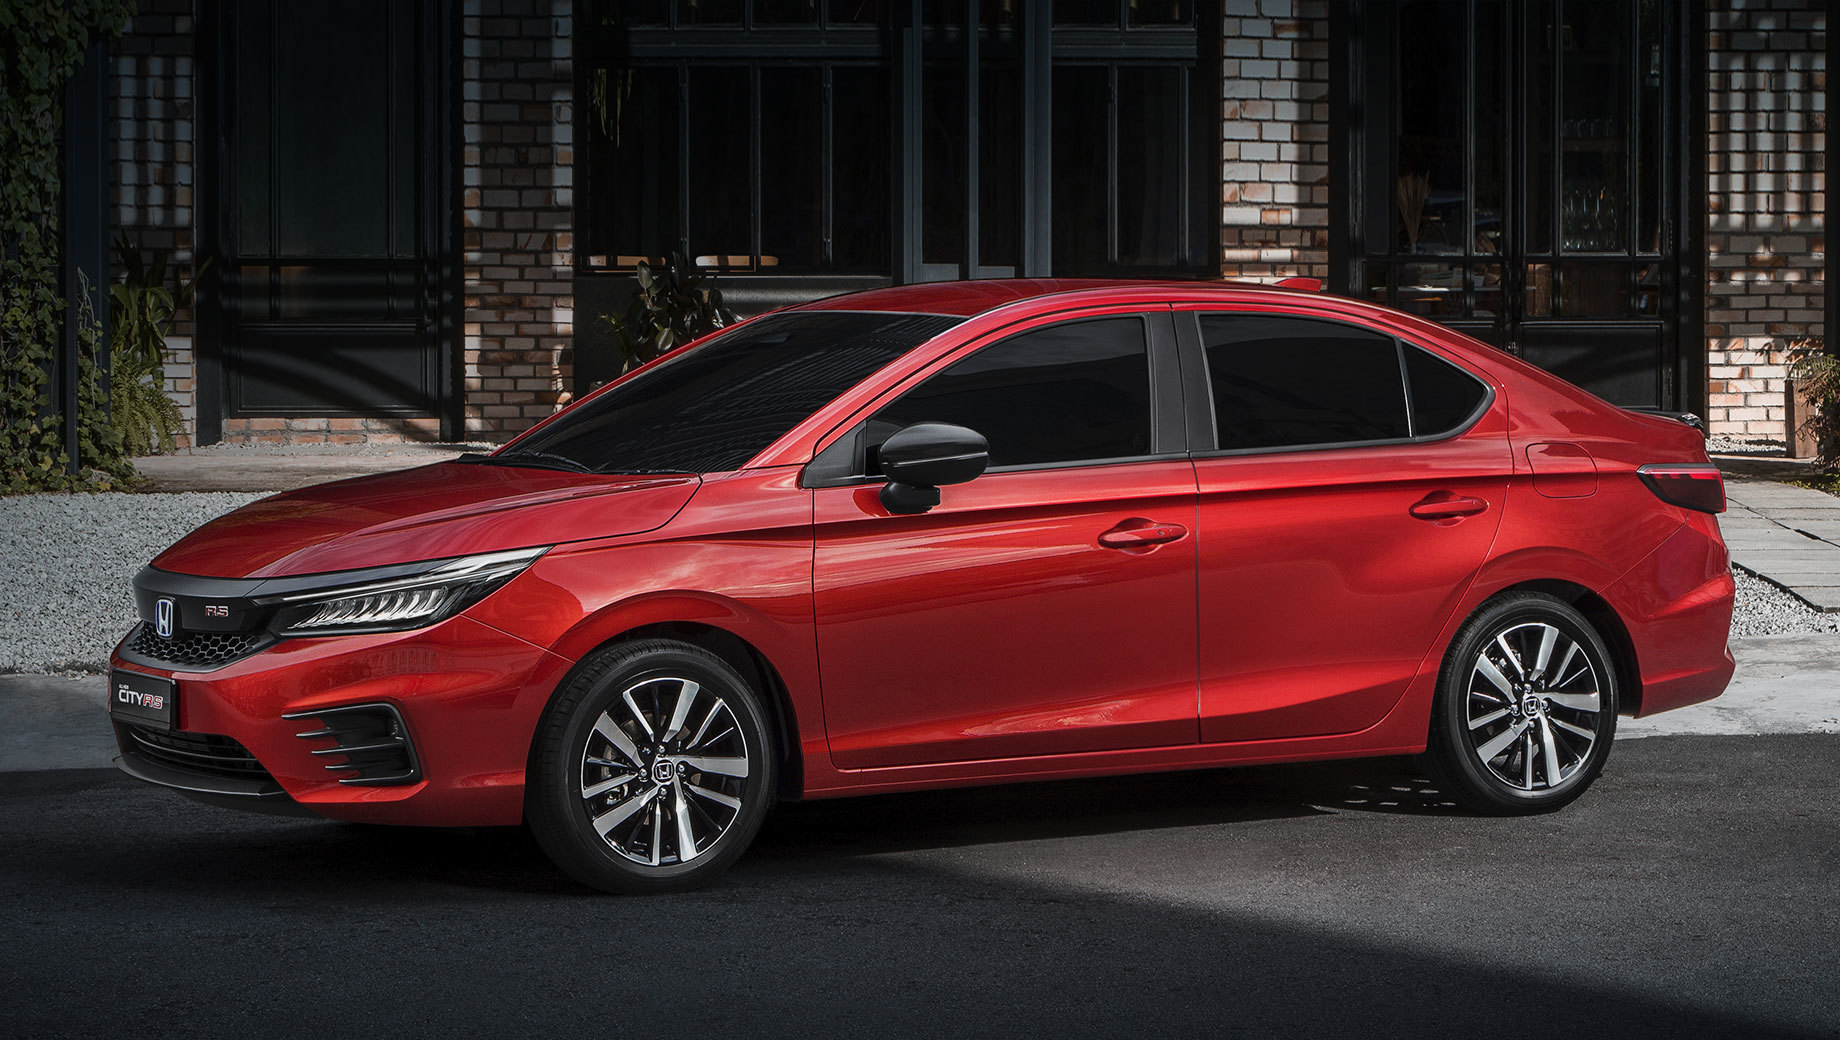 Премьера гибрида Honda City RS пройдёт в Малайзии